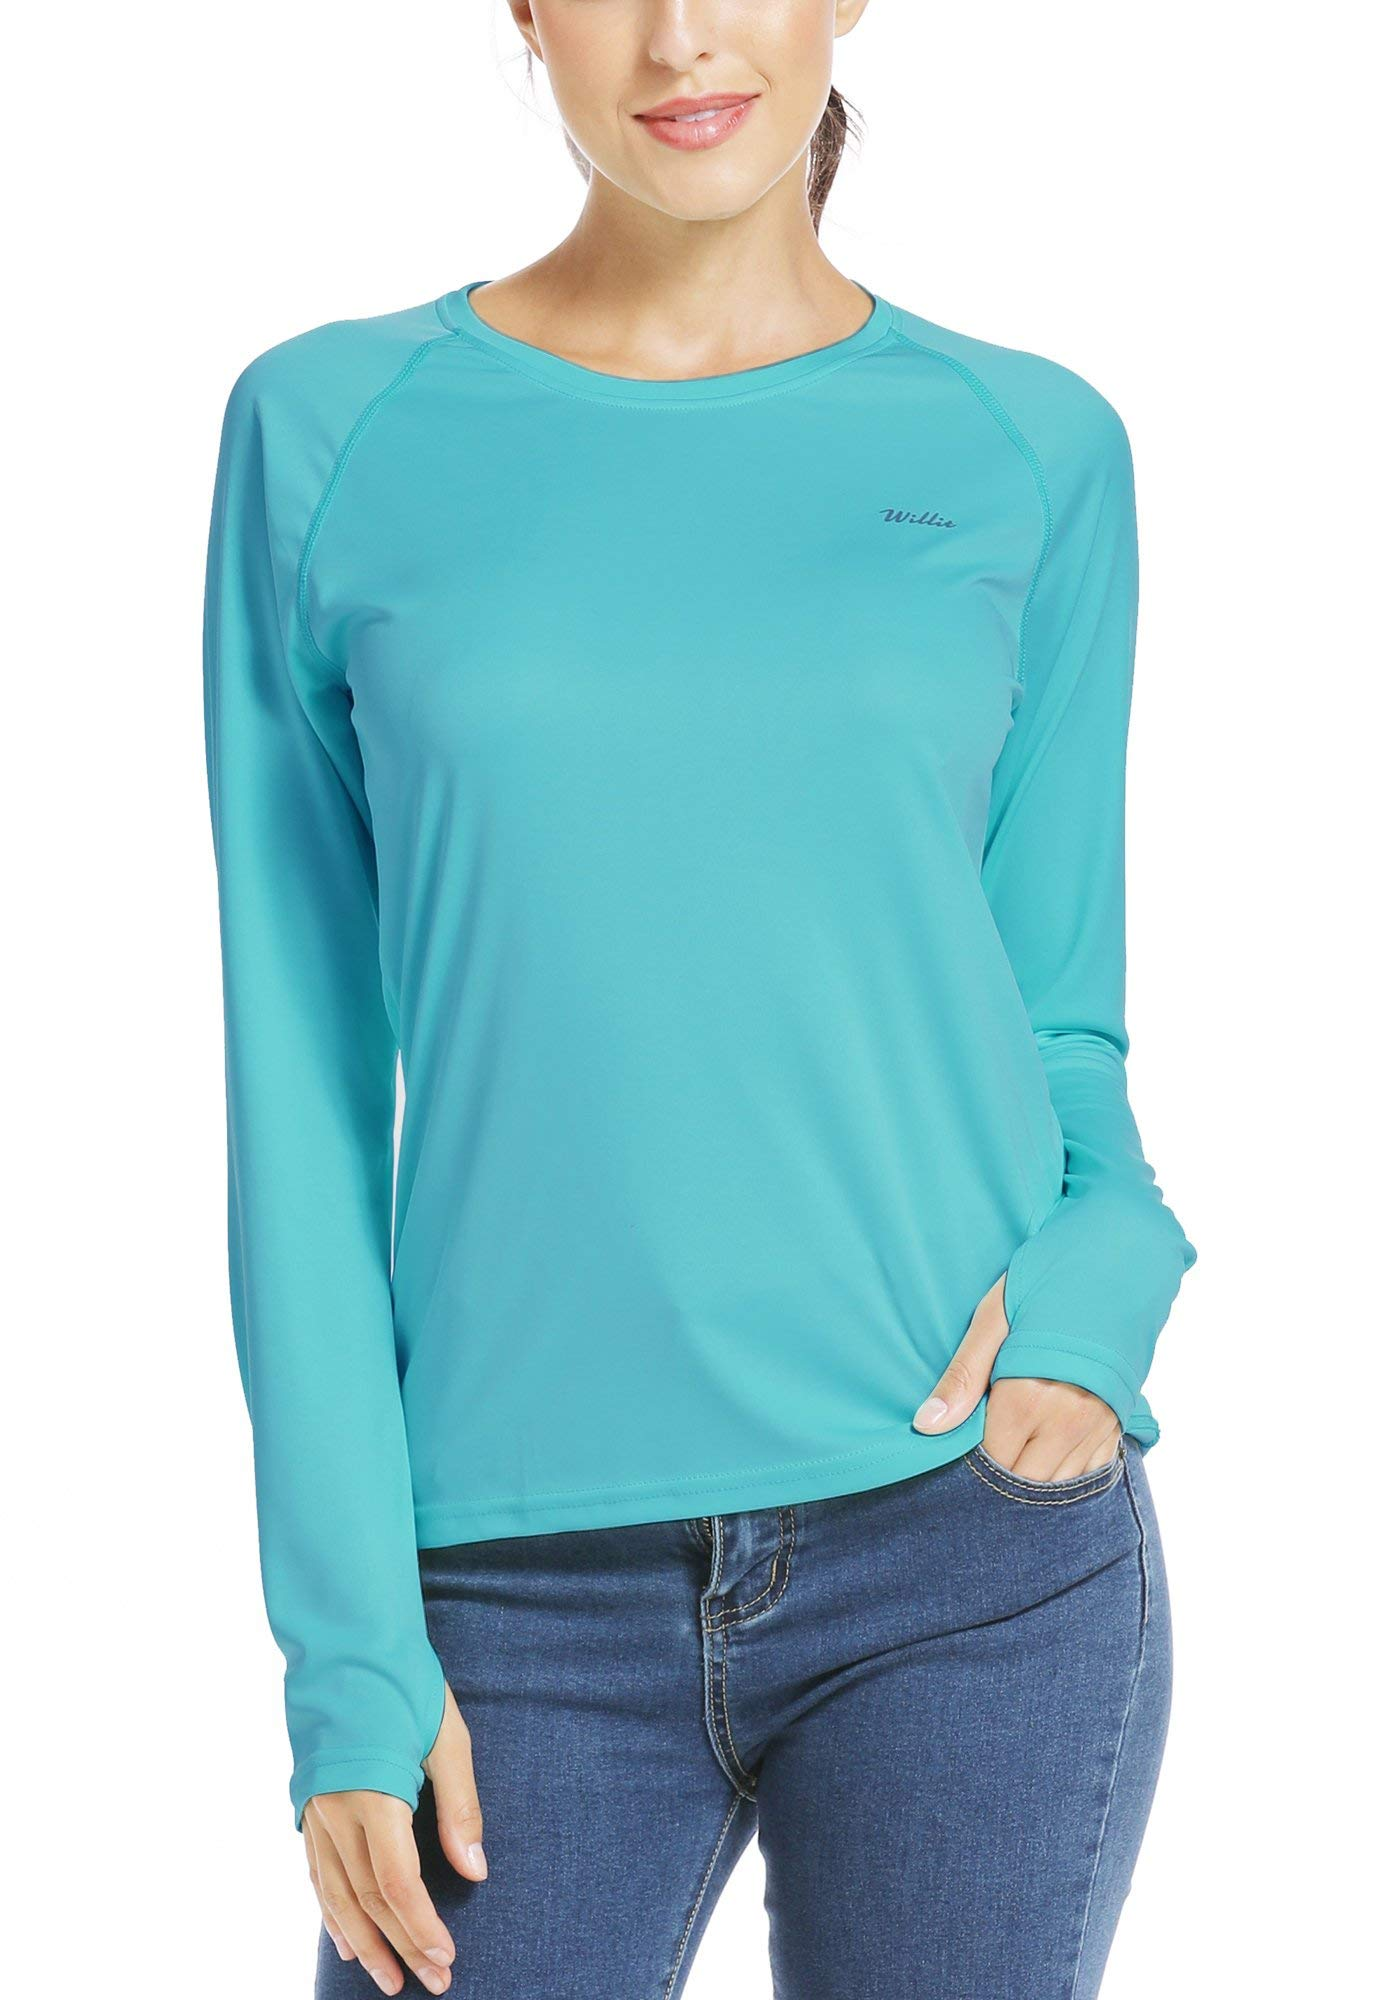 Willit Women's UPF 50+ Sun Protection T-Shirt Long Sleeve SPF UV Hiking Outdoor Top Dry Fit Lightweight